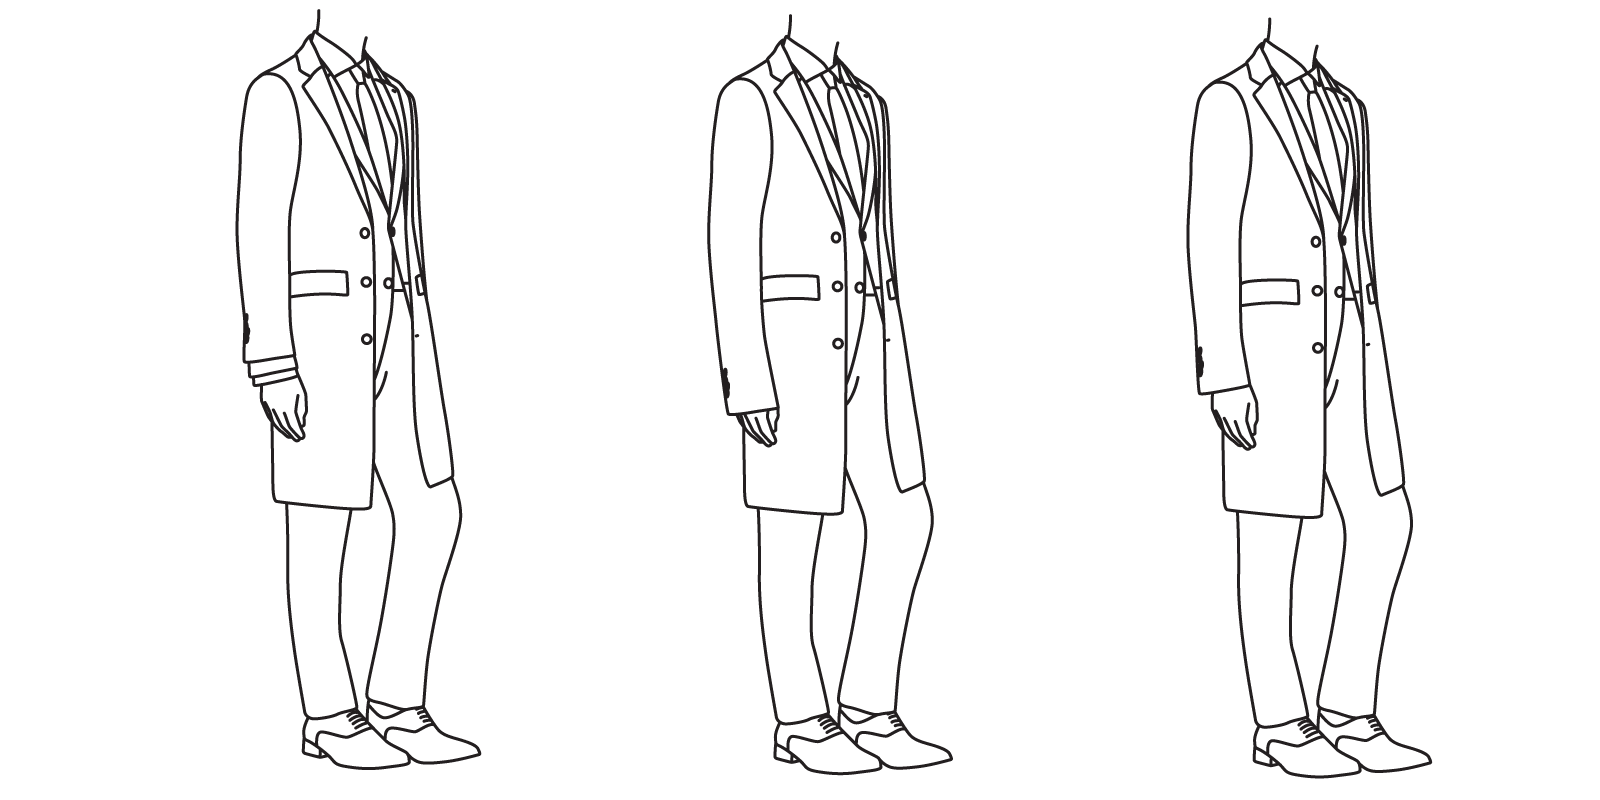 The coat sleeve should not be short enough to expose the suit jacket sleeve (left), and it should not be long enough as to extend beyond the wrist (center). It should just cover the suit jacket sleeve (right).